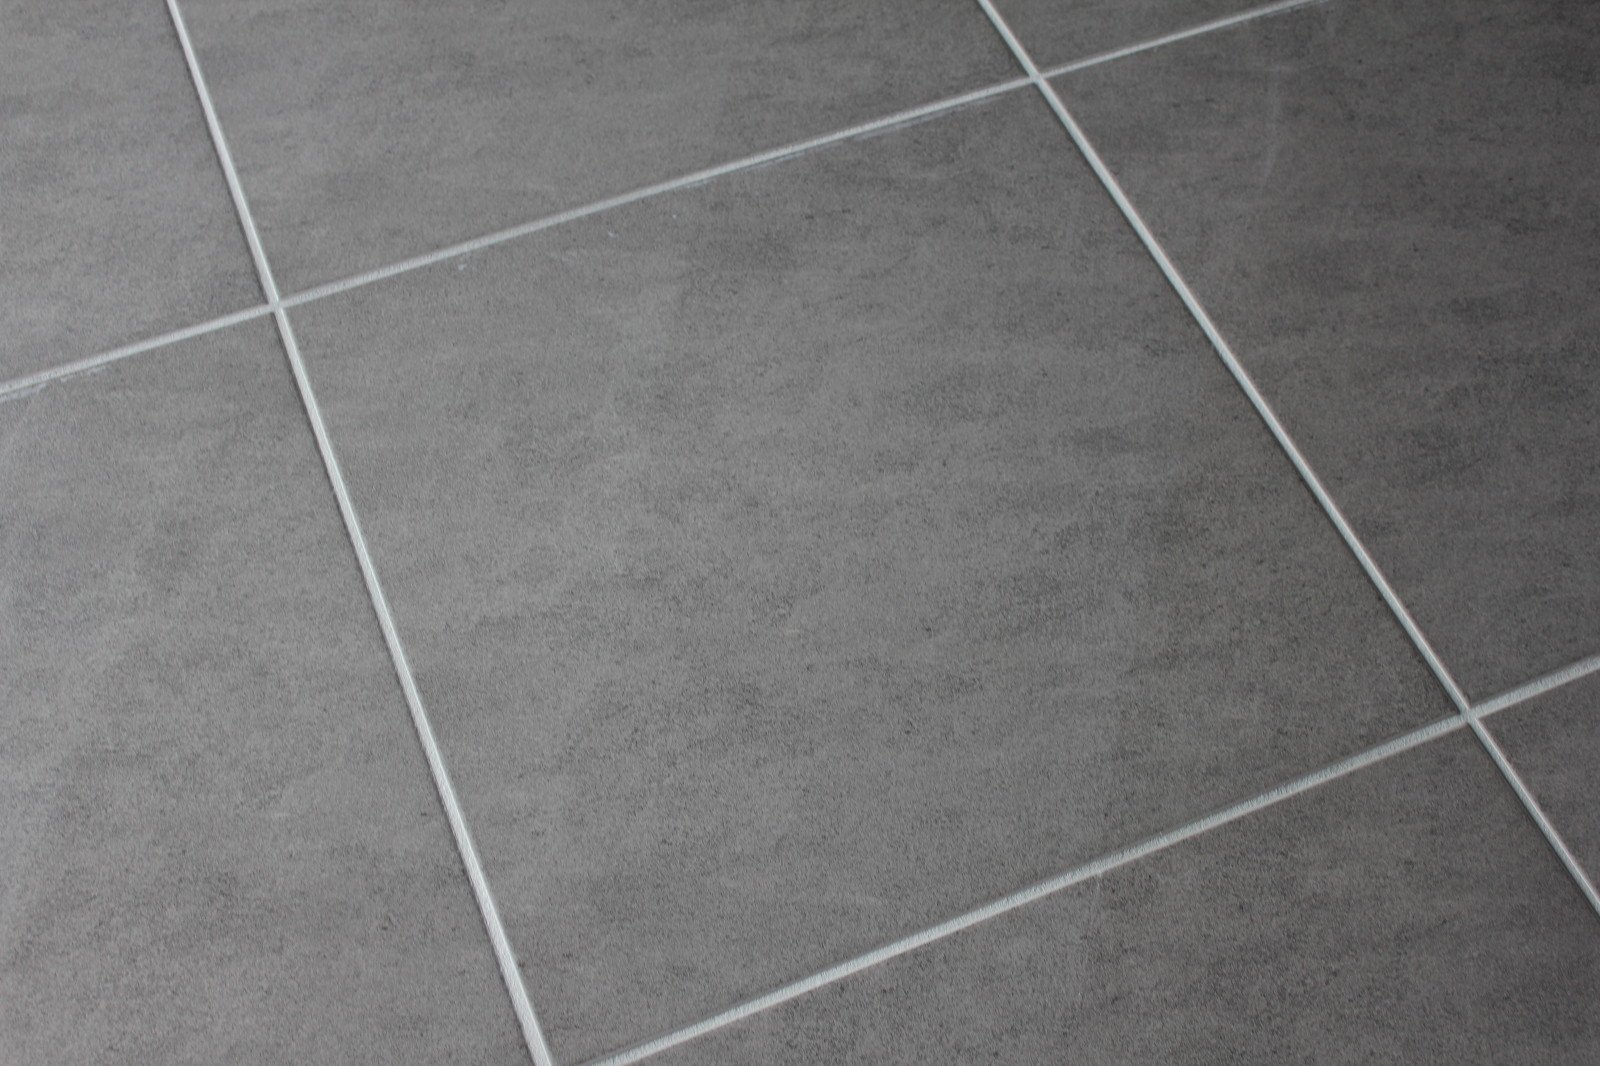 Lino imitation carrelage meilleures images d 39 inspiration for Carrelage 60x60 gris anthracite